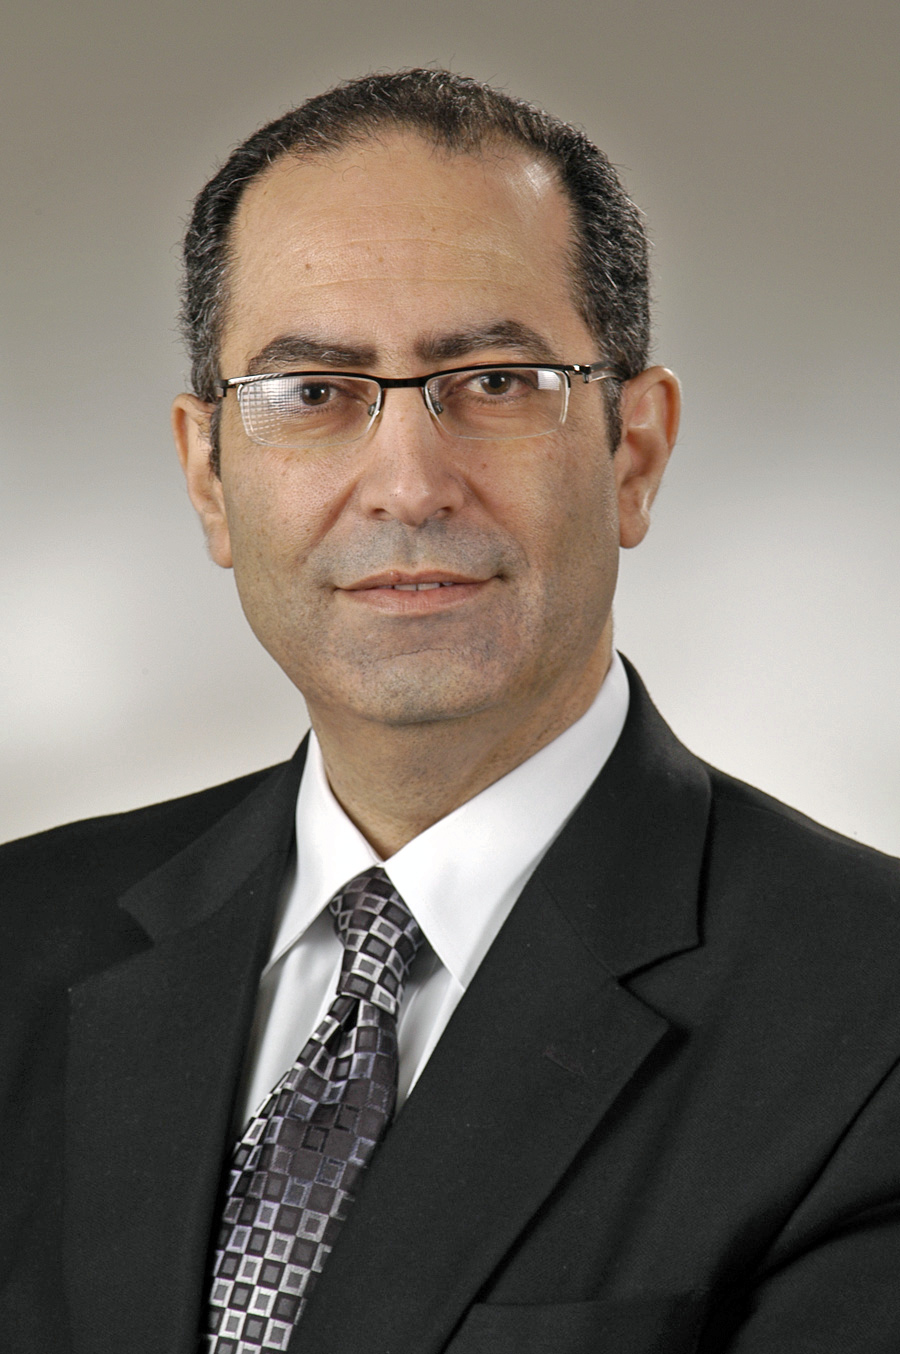 Dr. Ragheb Assaly Picture